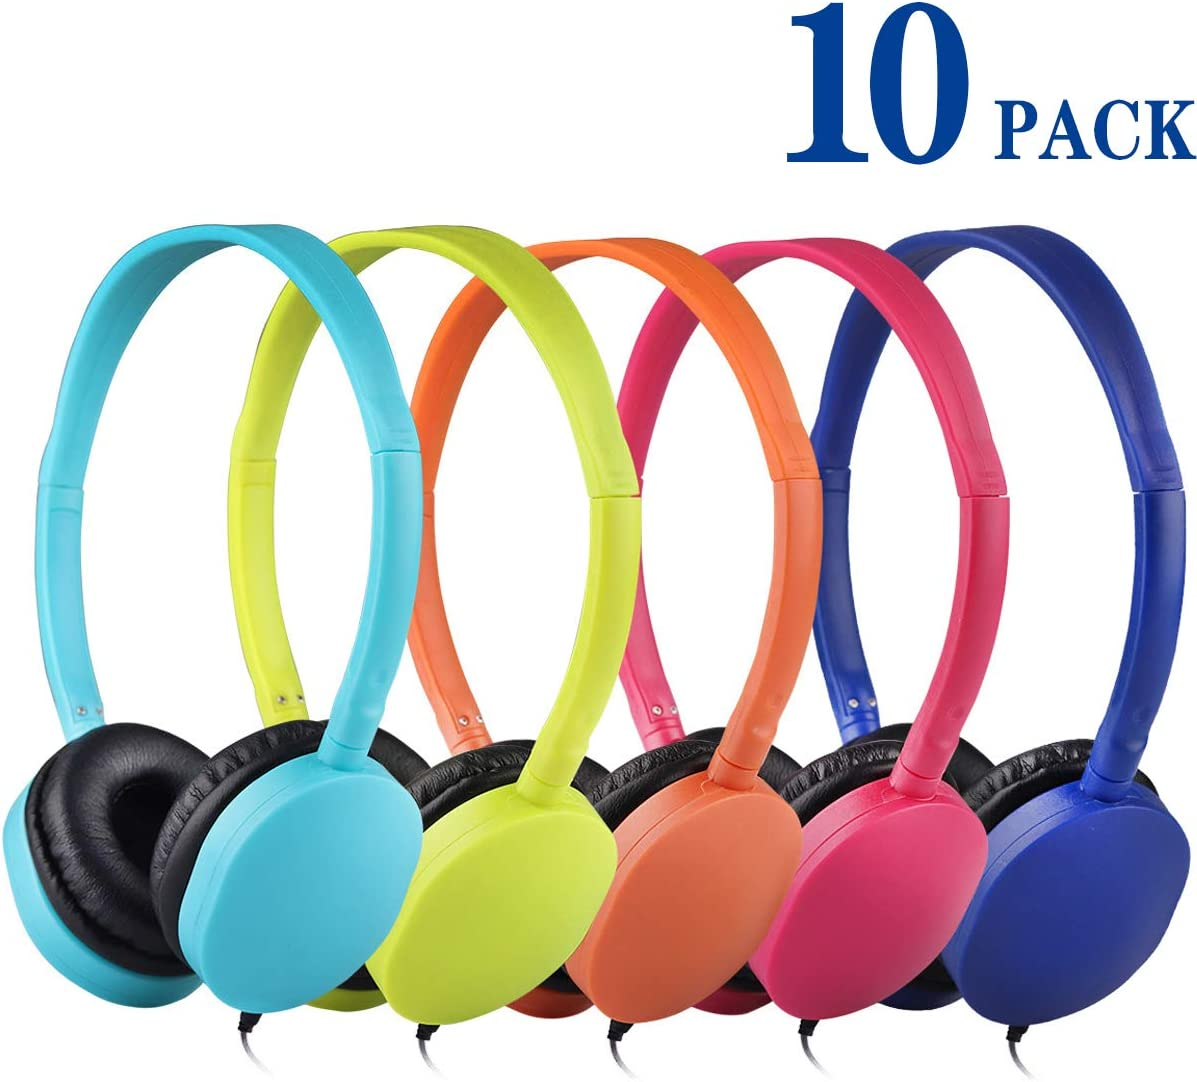 Kids Headphones Bulk 10 Pack Multi Colored for School Classroom Students Kids Children Teen and Adults Mixed Colors